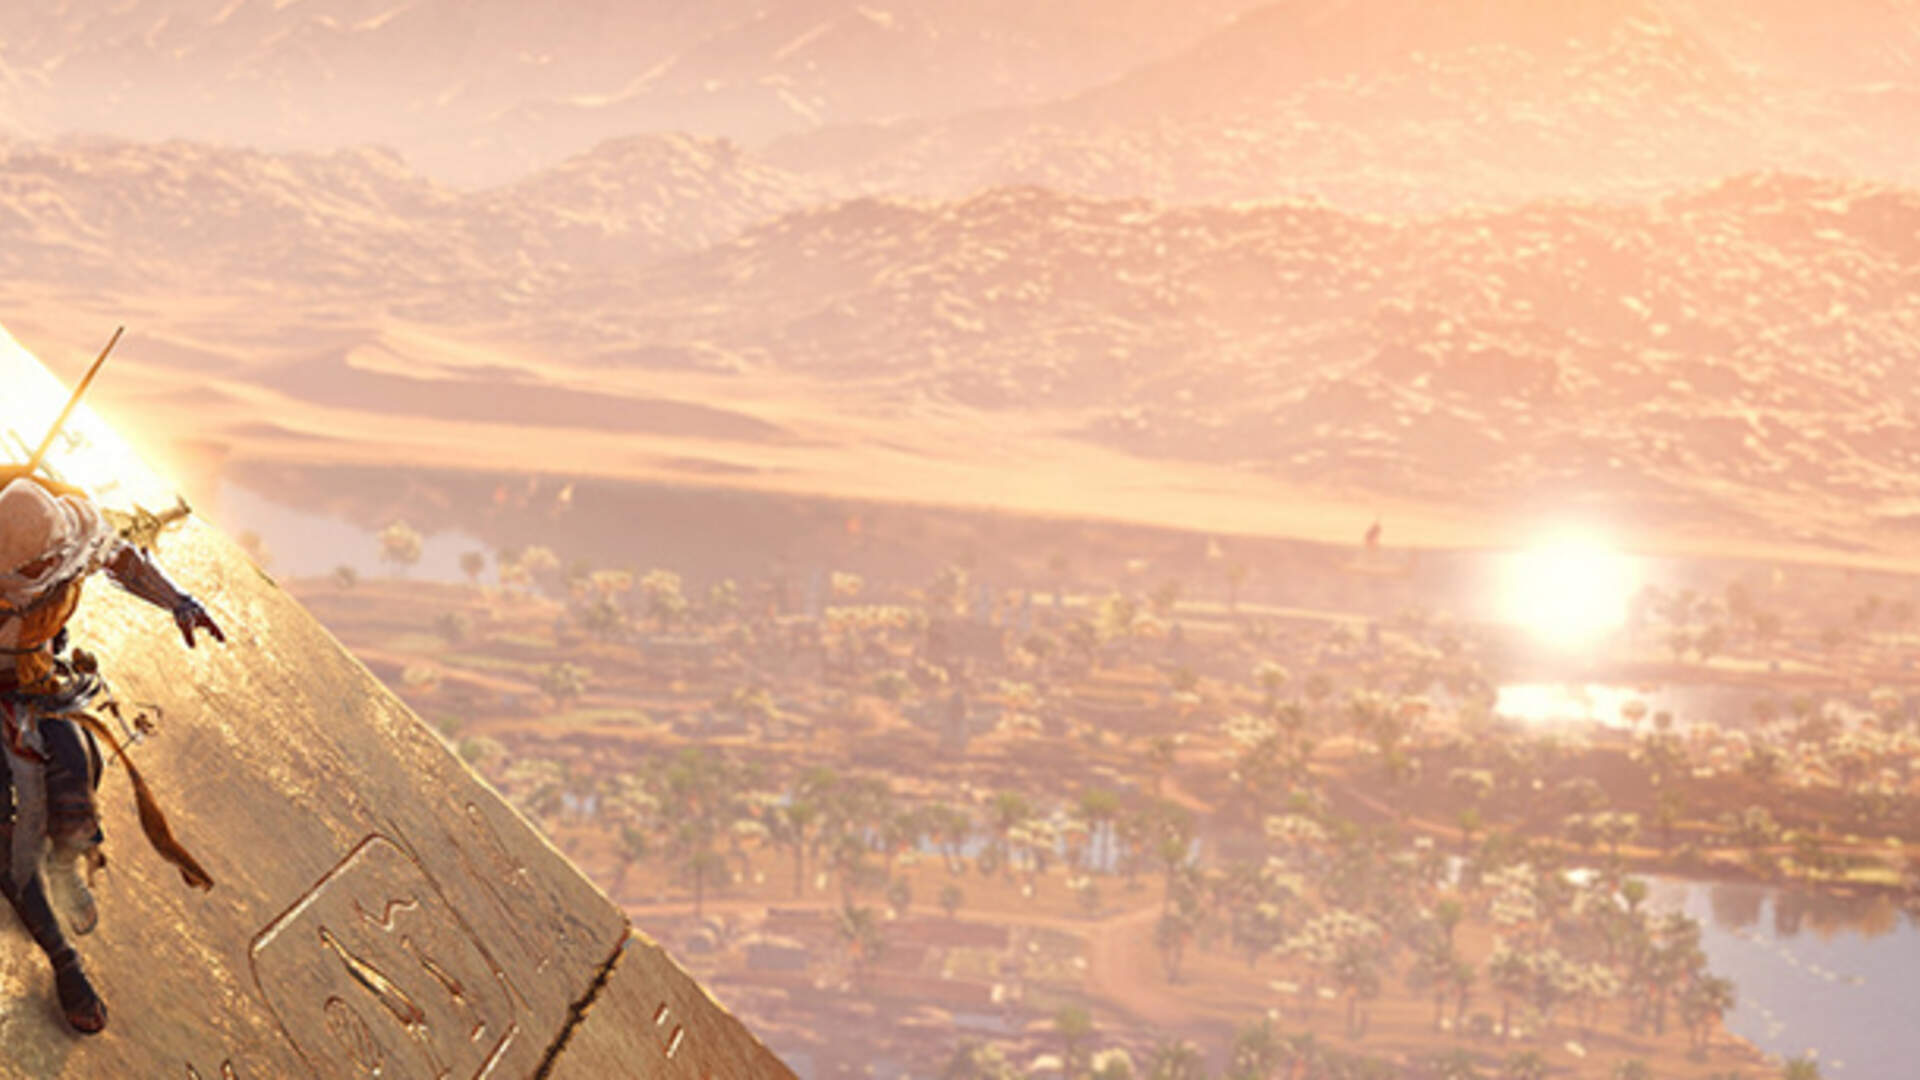 Assassin's Creed: Origins Wants to Reinvent the Franchise